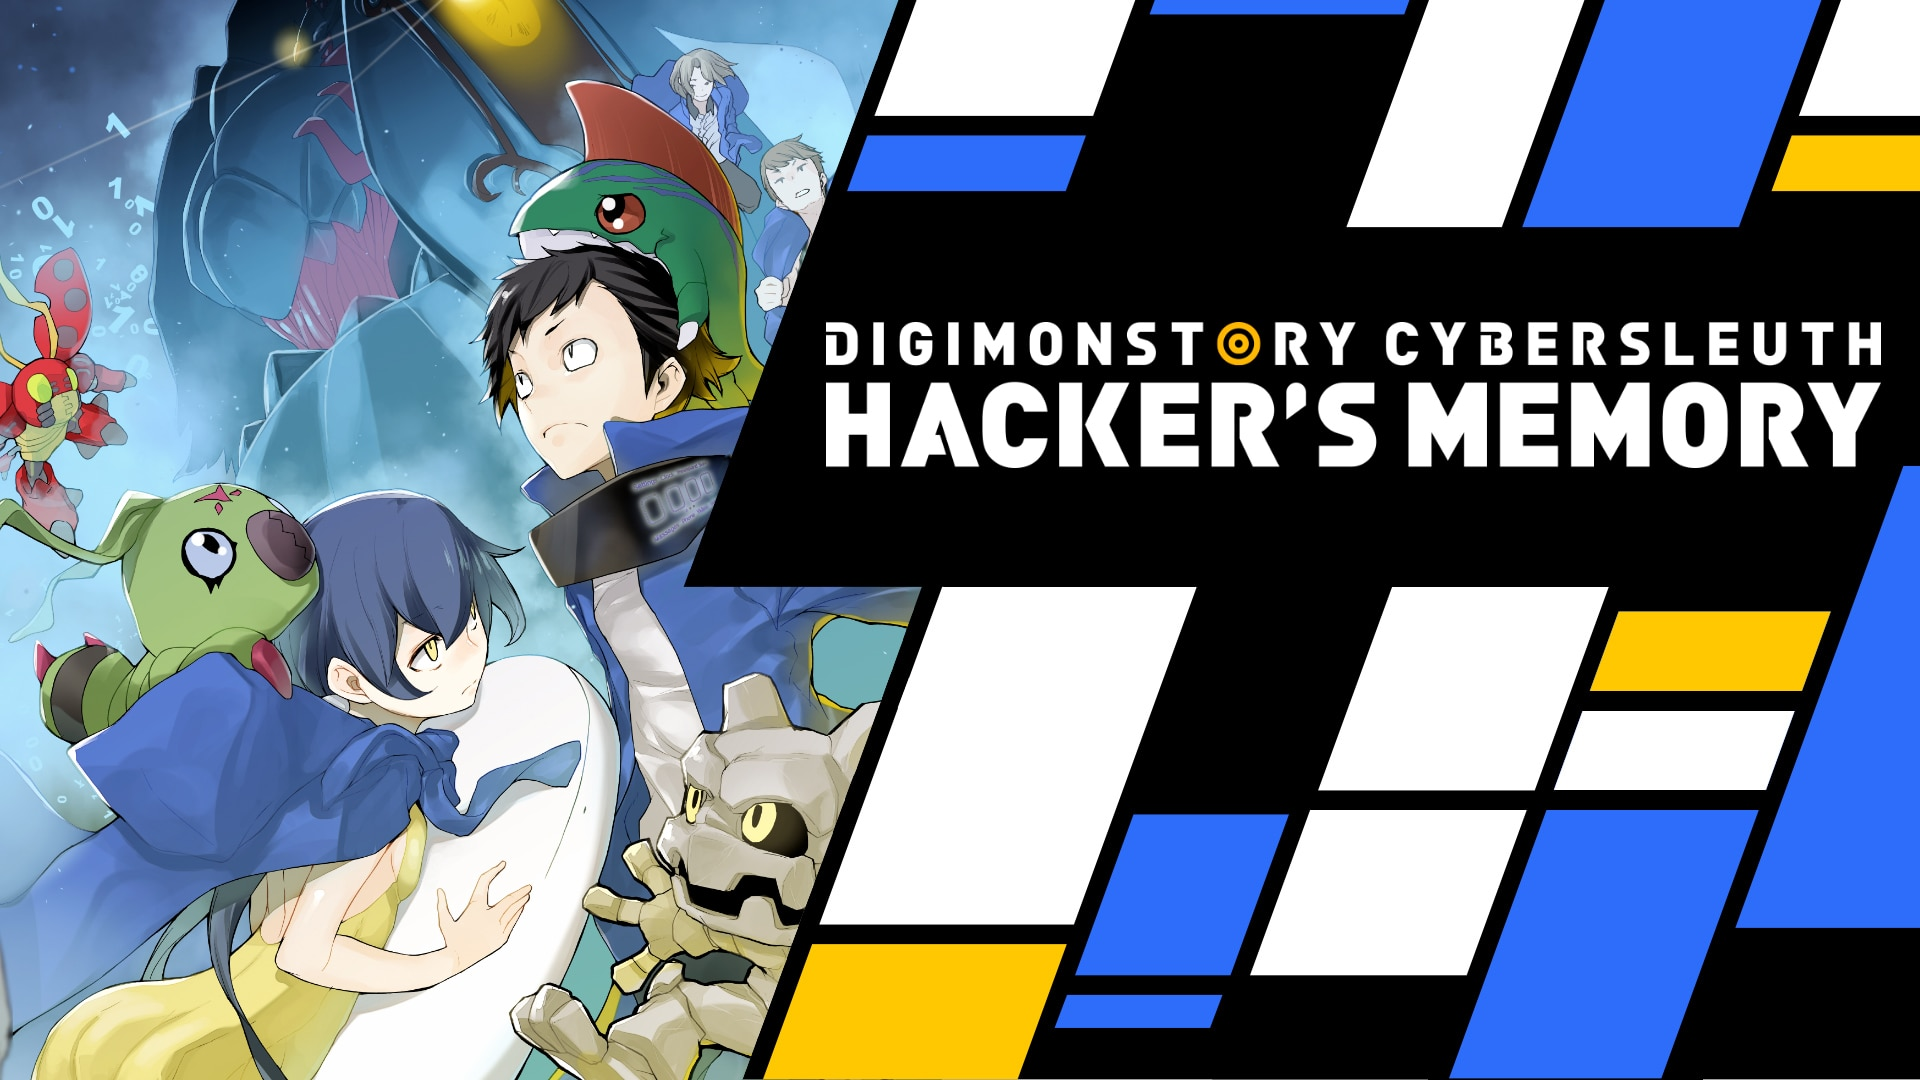 DIGIMON STORY: CYBER SLEUTH - HACKER'S MEMORY (English)